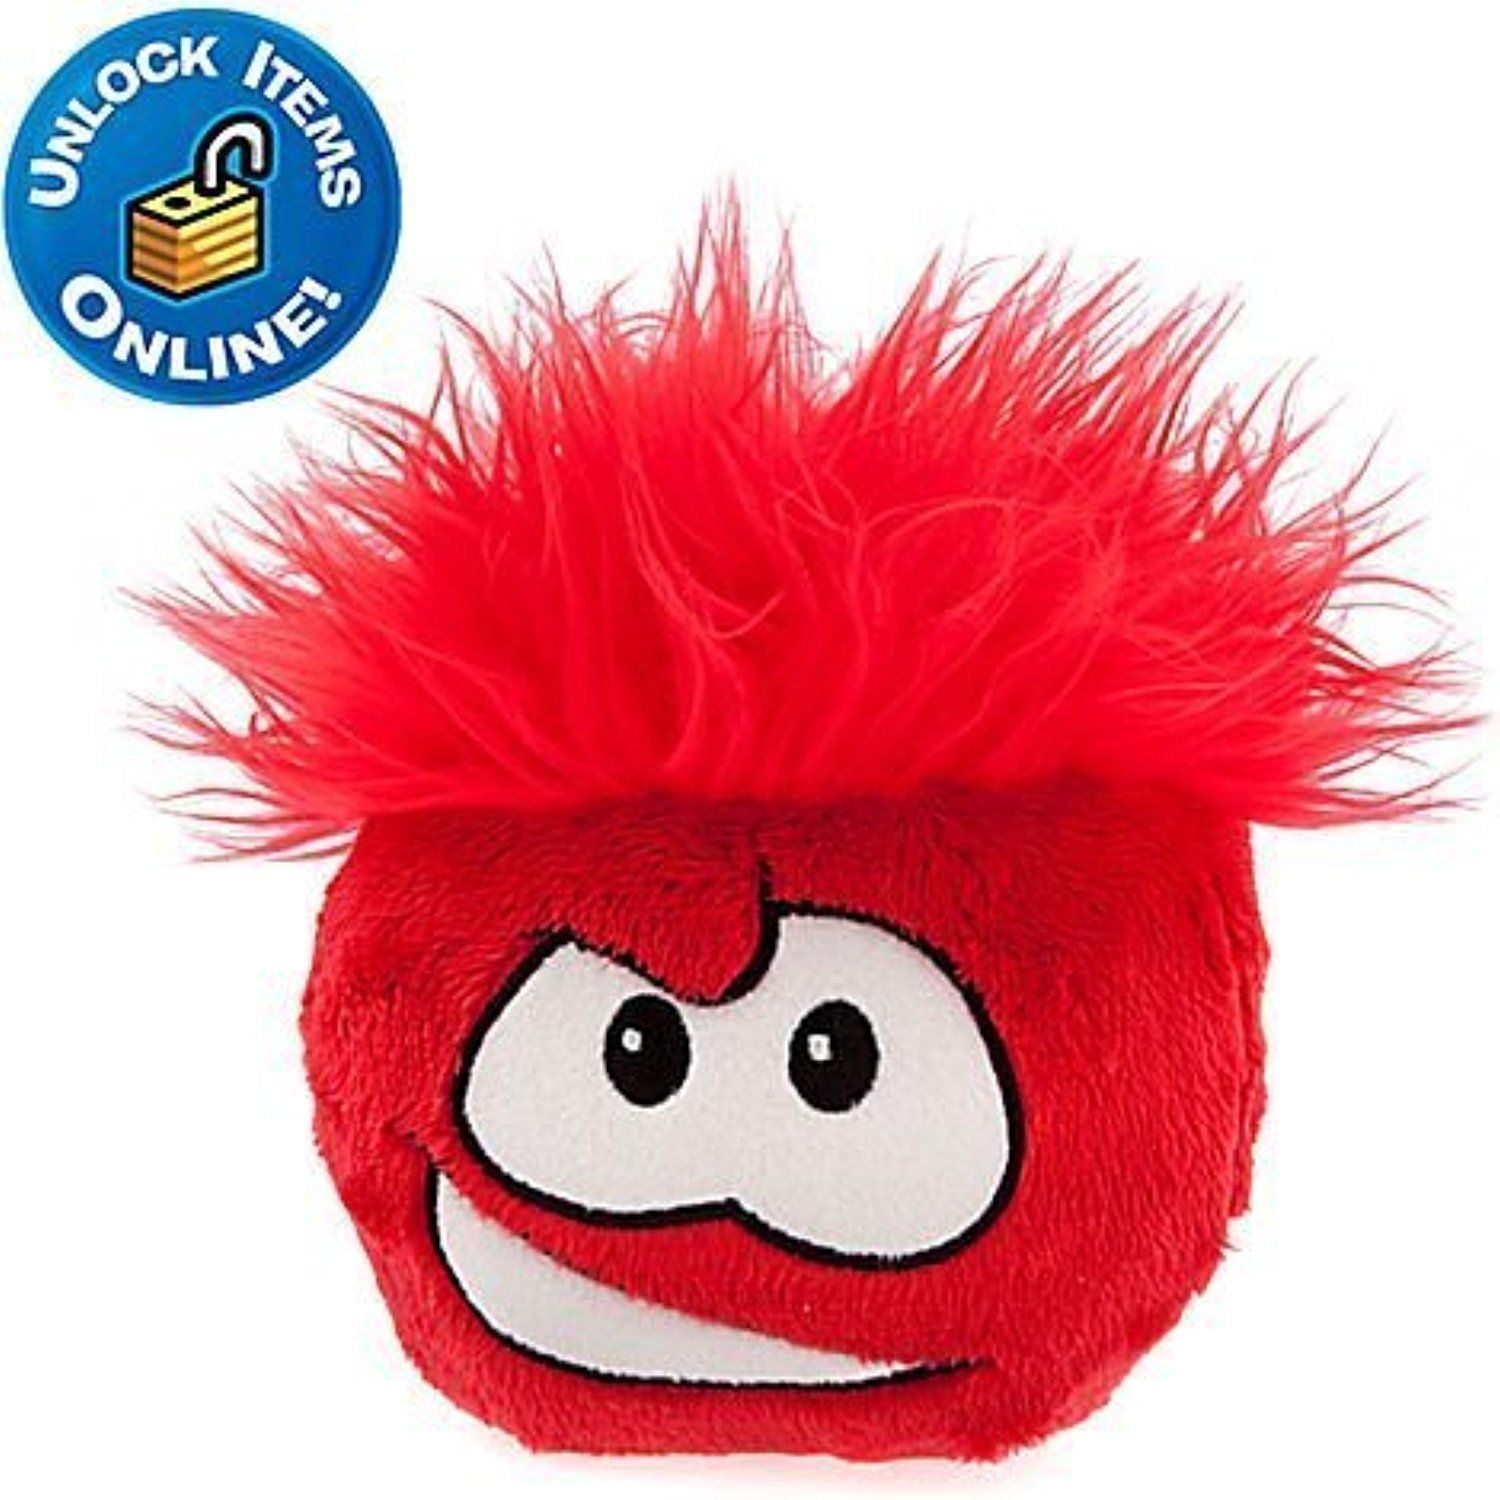 Without Gold Coin Club Penguin Orange Puffle 6-Inch Plush